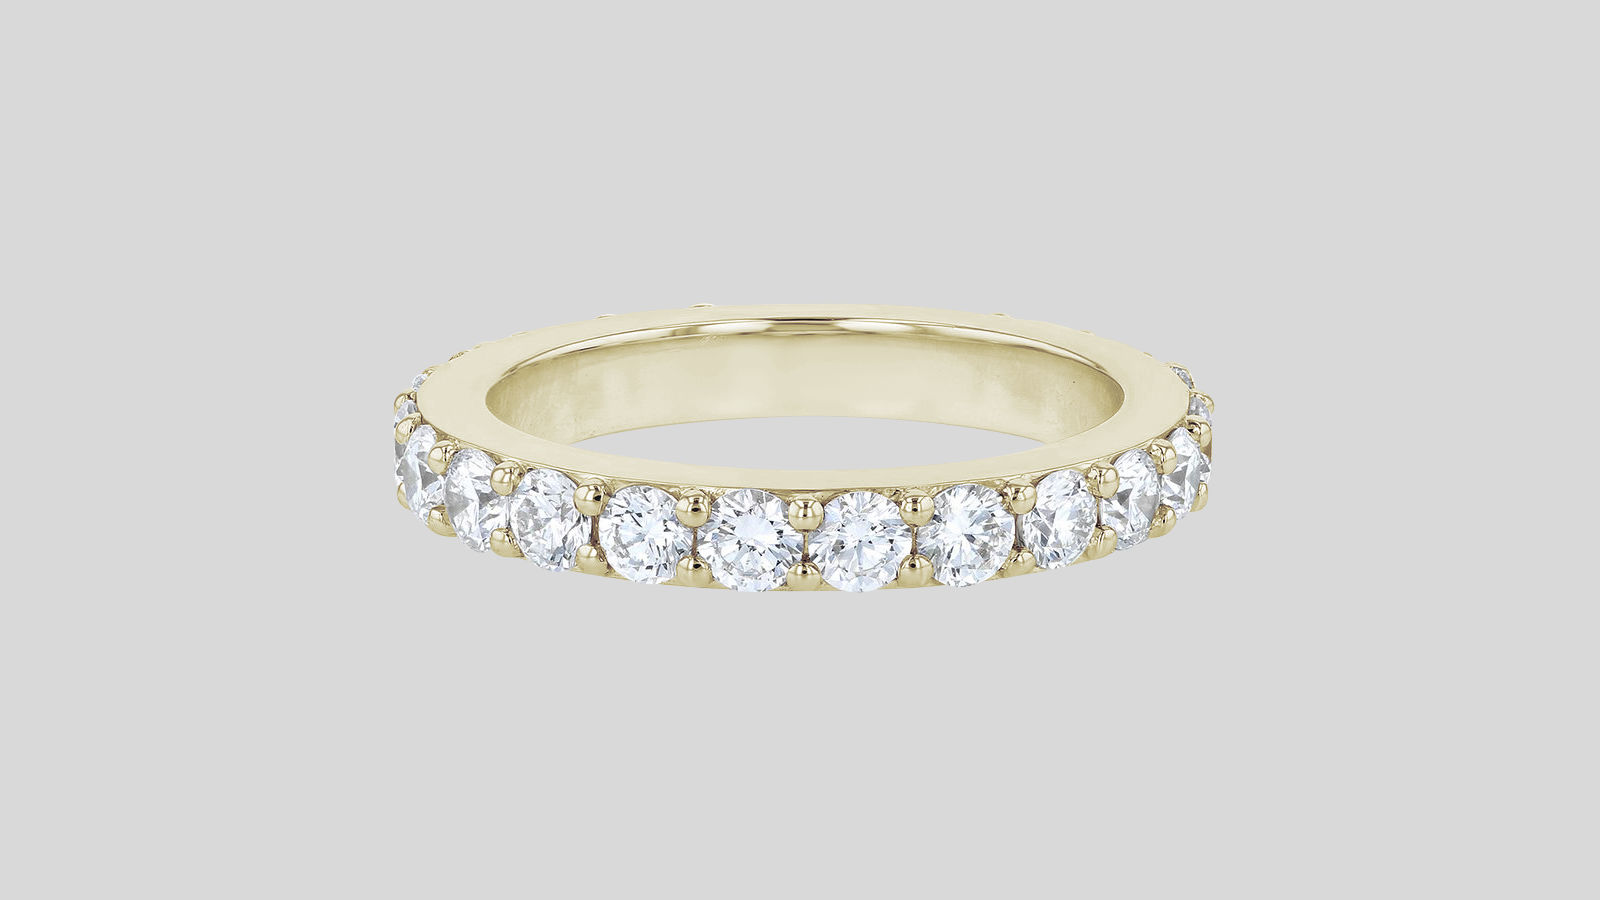 The 2 Carat Diamond Eternity Band Ring